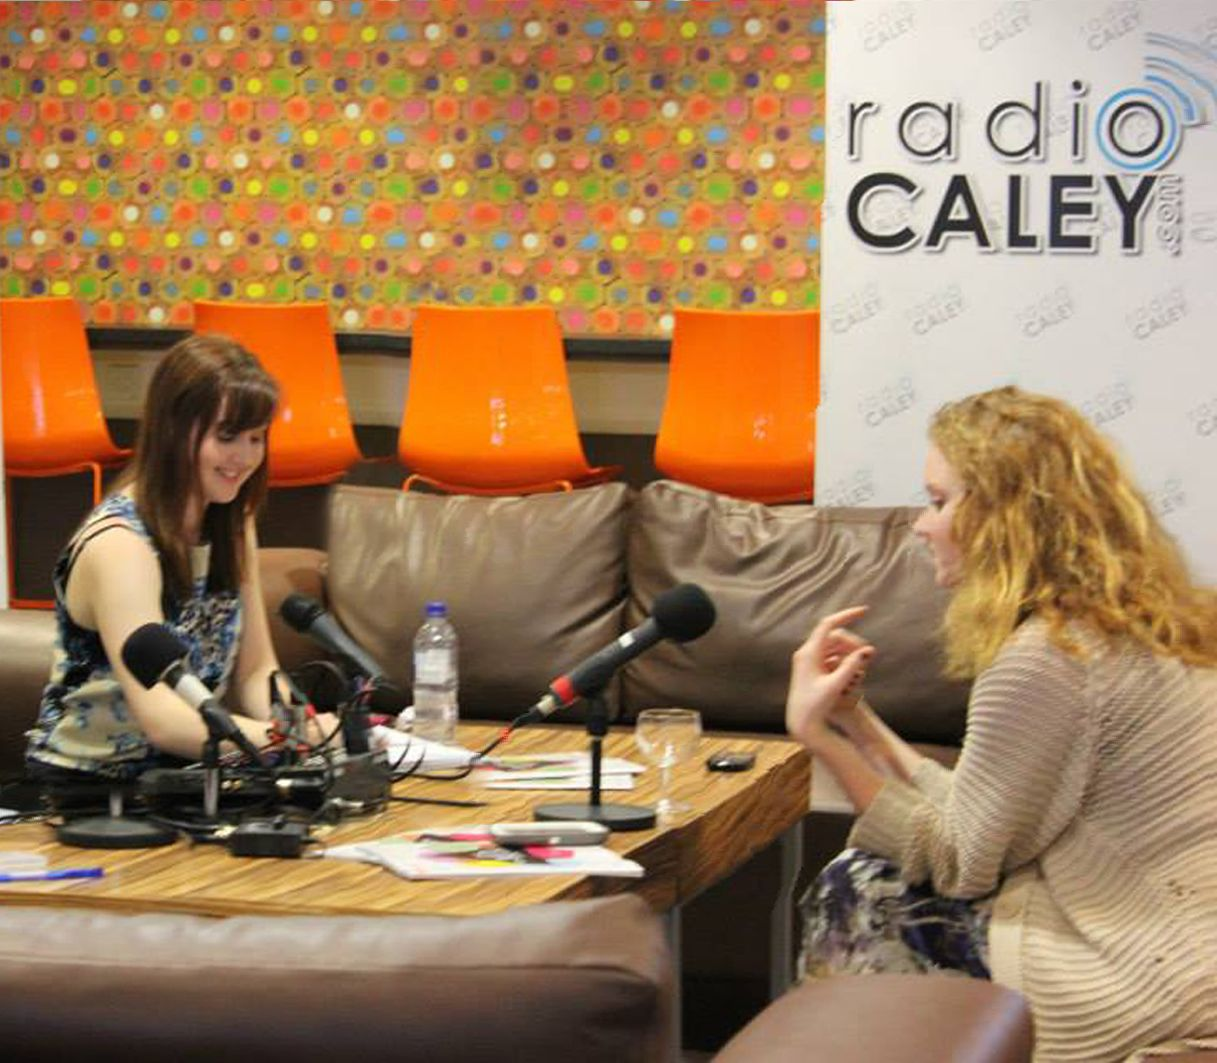 Radio Caley presenter Jemma McGuffie talks to model turned actress Lily Cole at Glasgow Caledonian University.